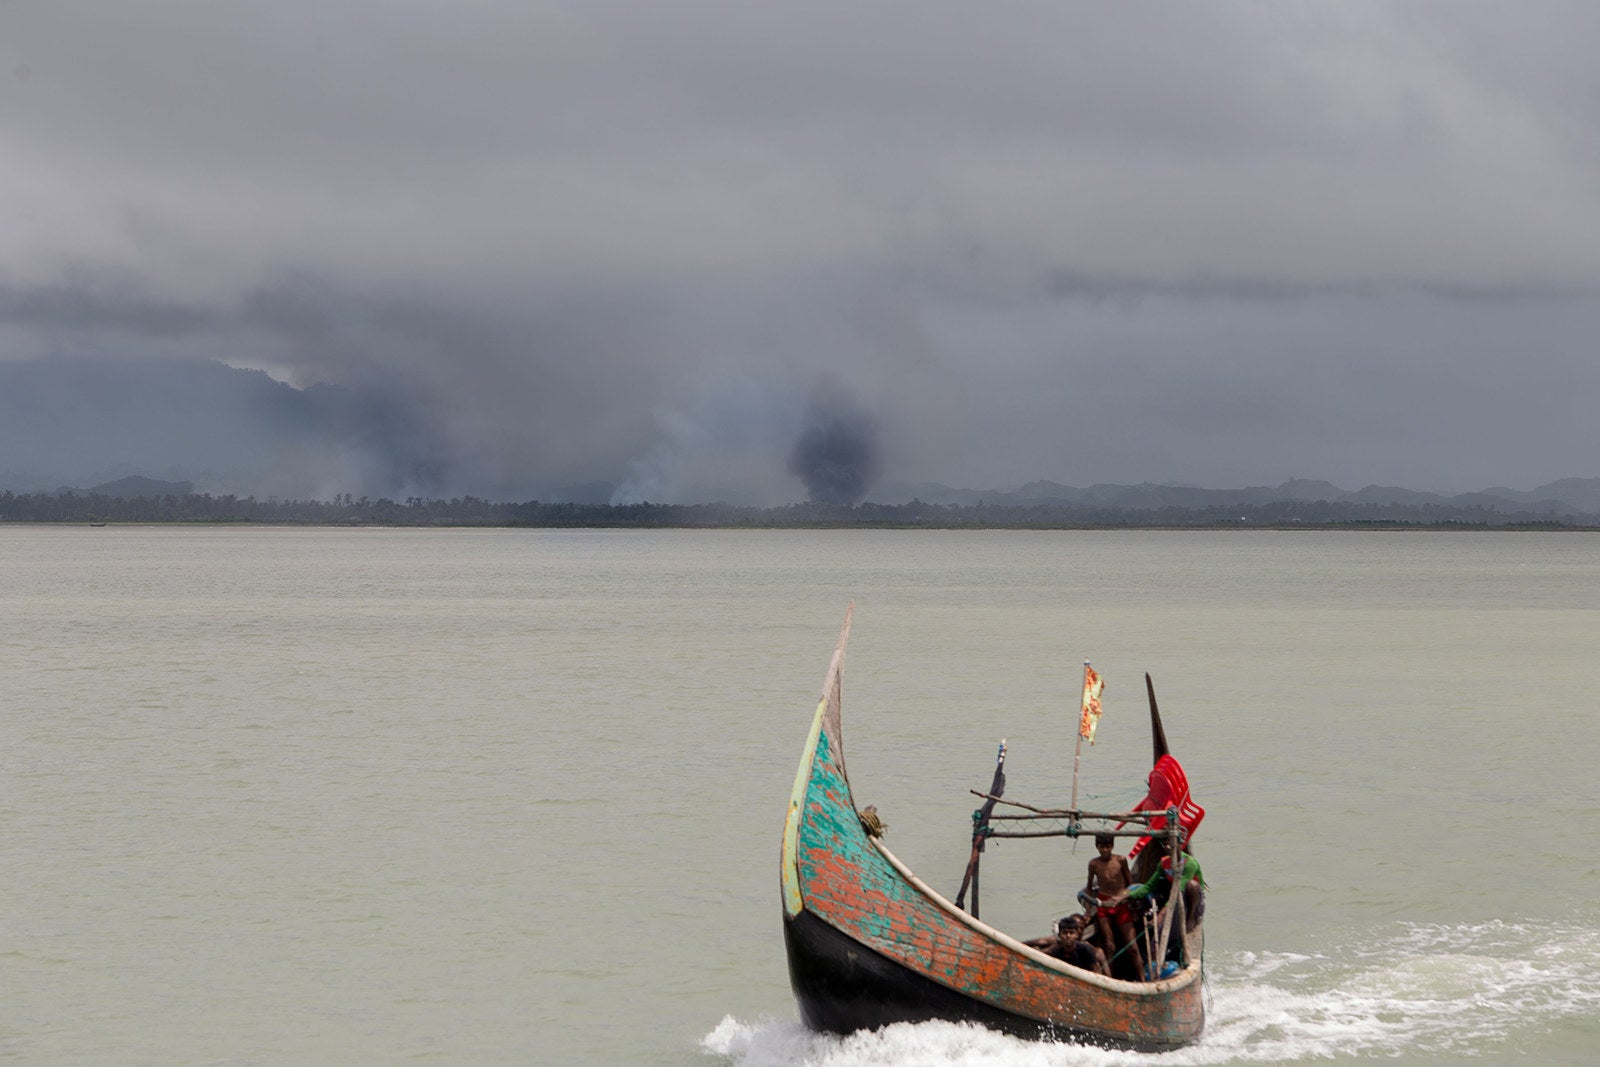 smugglers are demanding a lot of money to bring rohingyas to safety